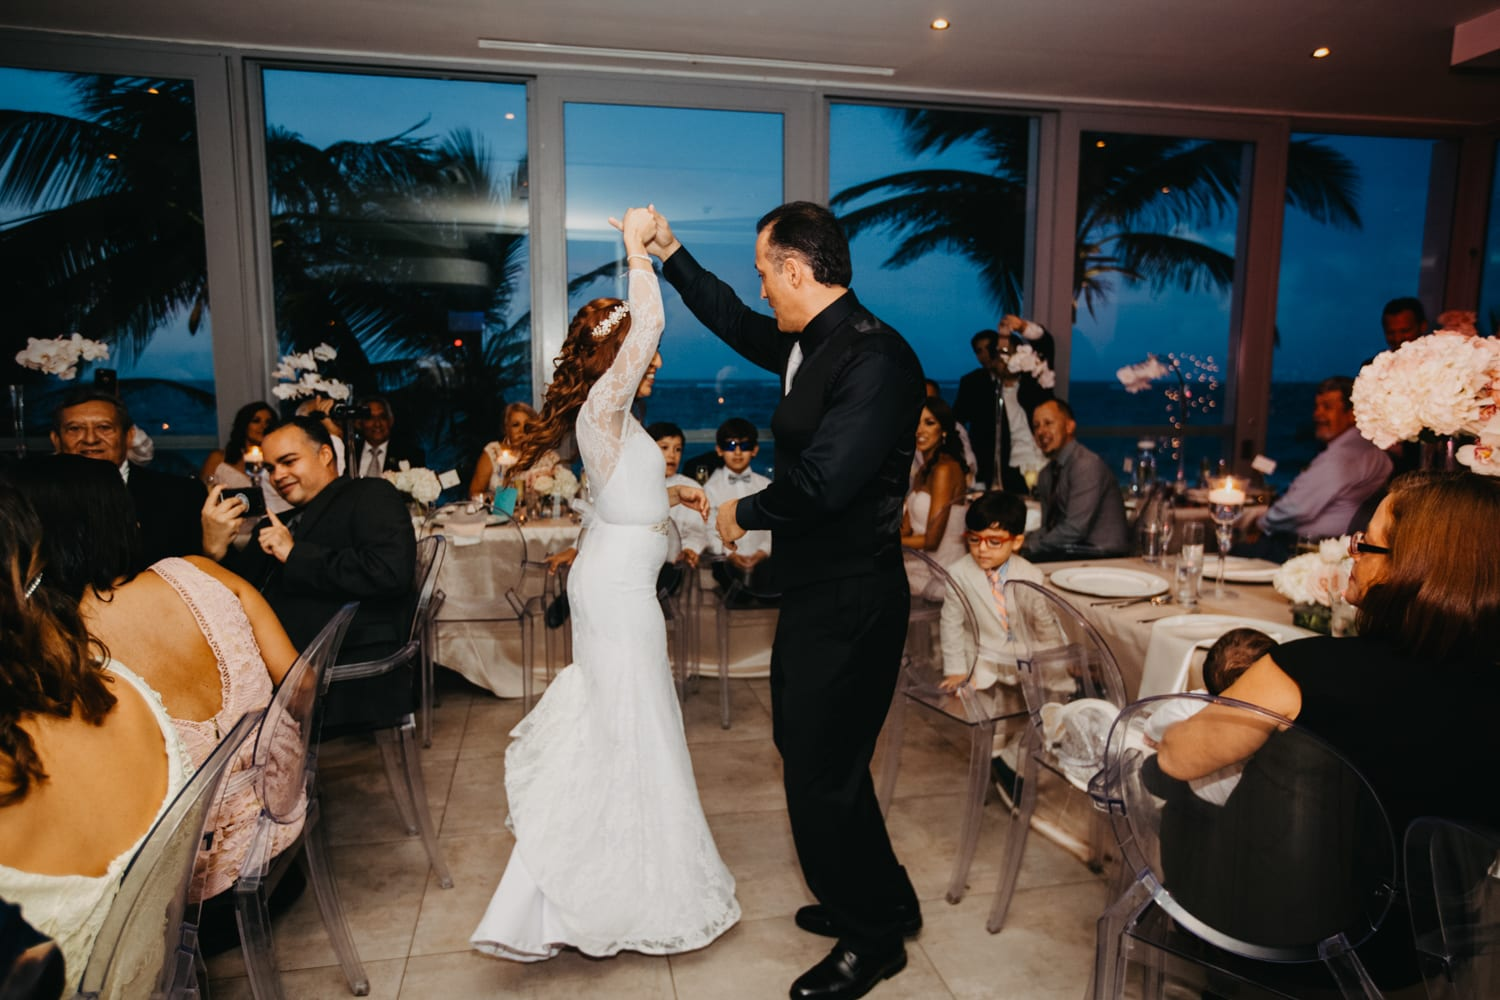 Puerto Rico Wedding Package.Beachfront Wedding At Hotel Oceano Condado In San Juan Pr